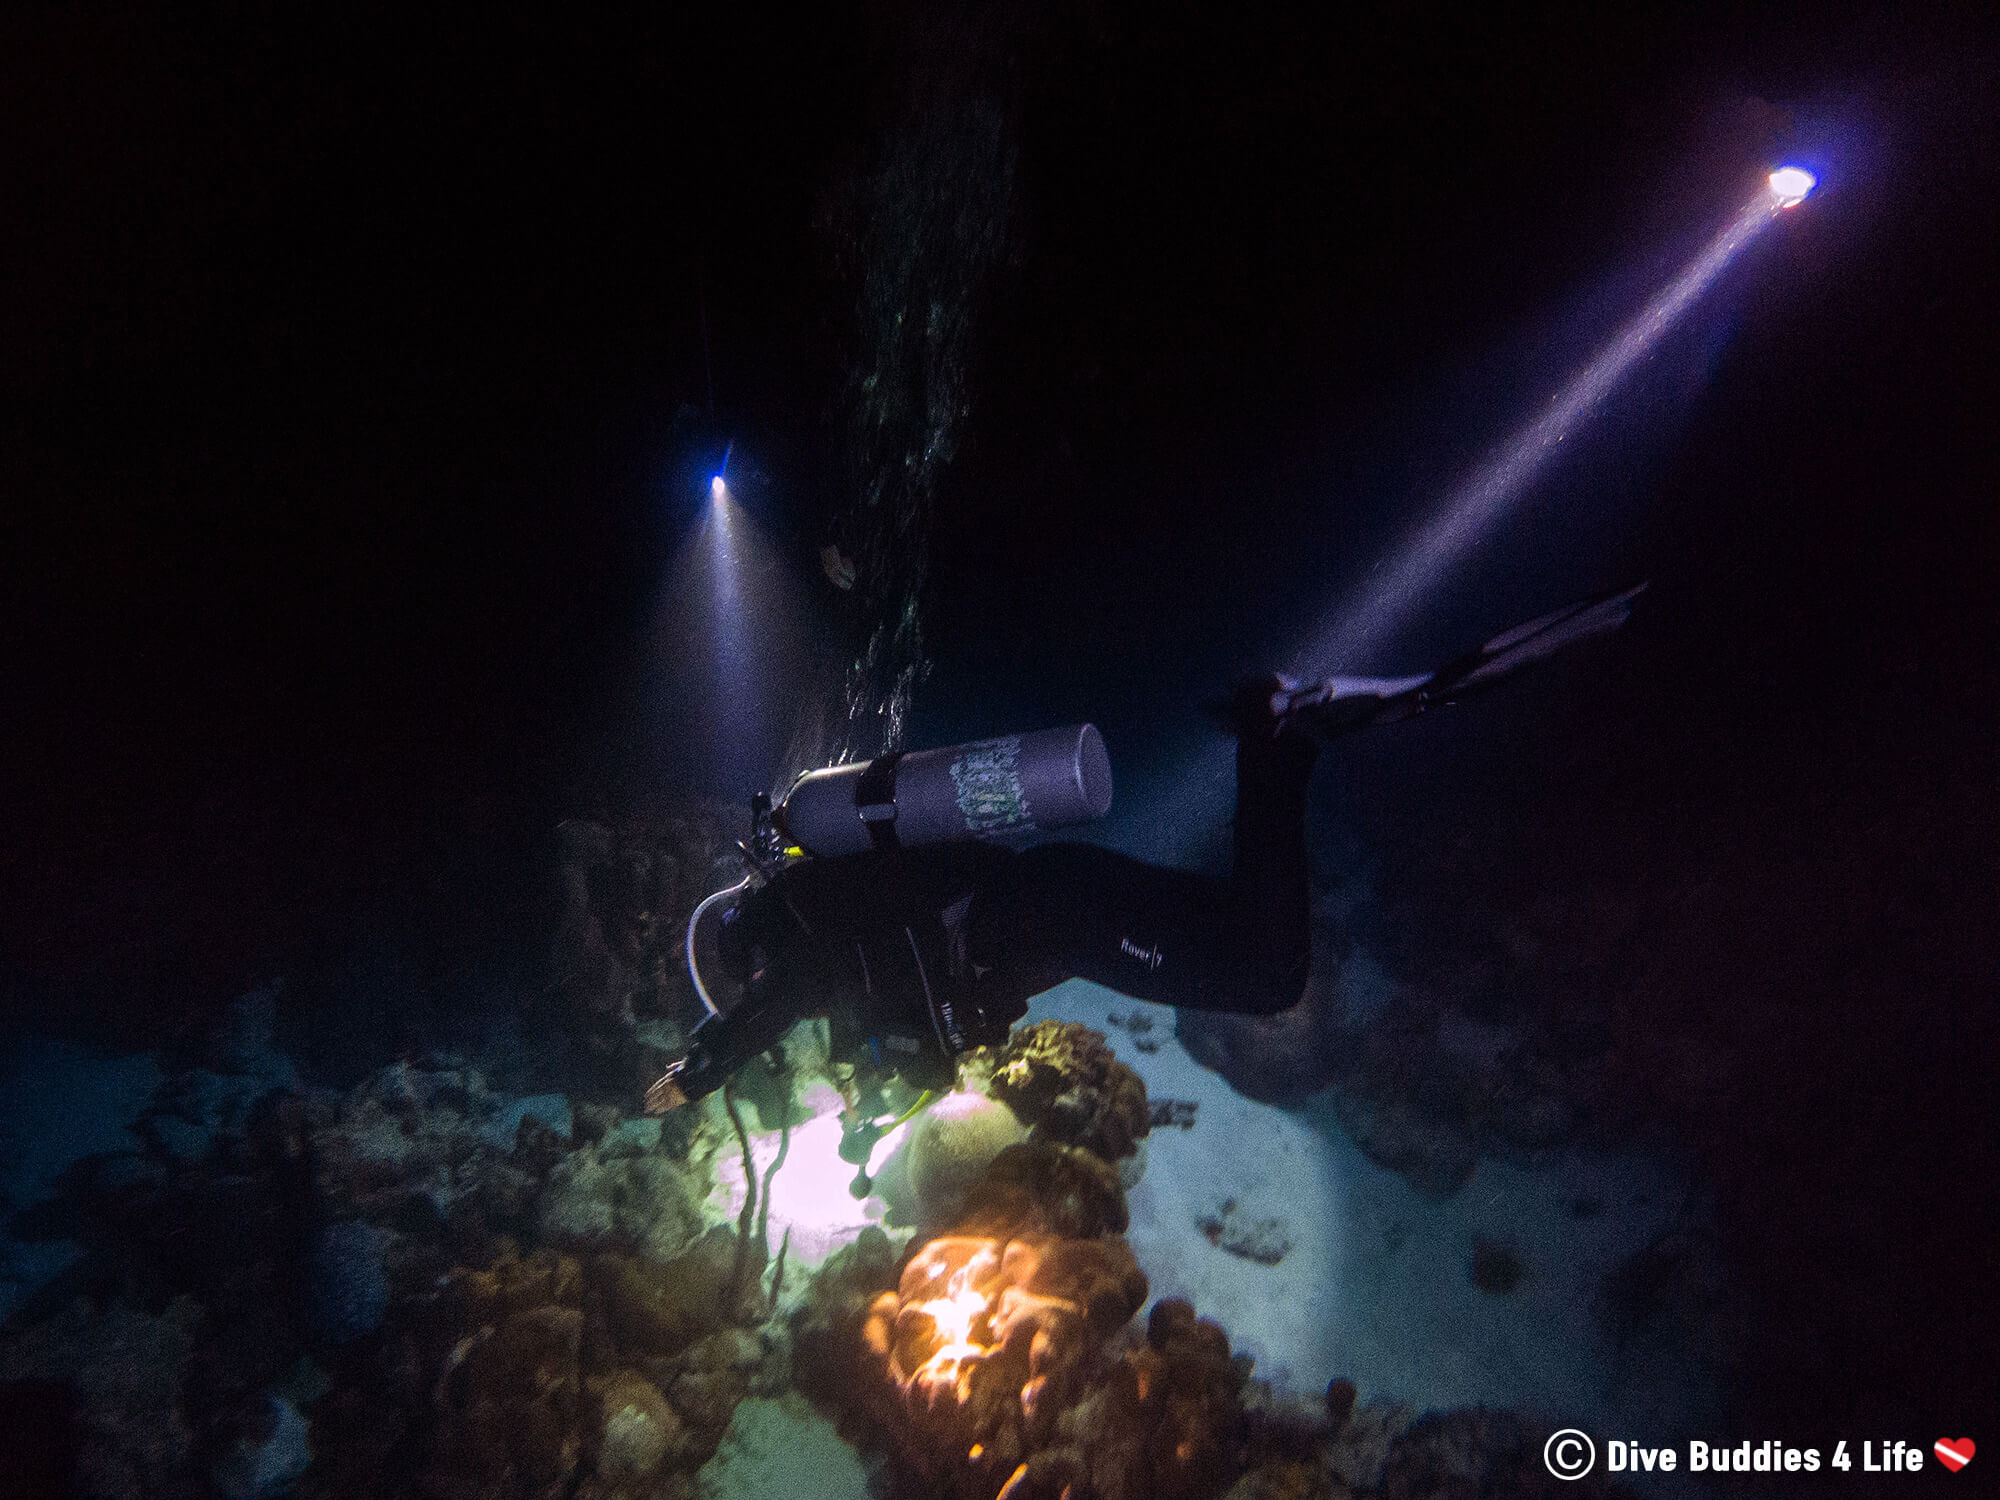 Three Scuba Divers On A Night Dive Lighting Up The Way With Their Dive Lights In Bonaire